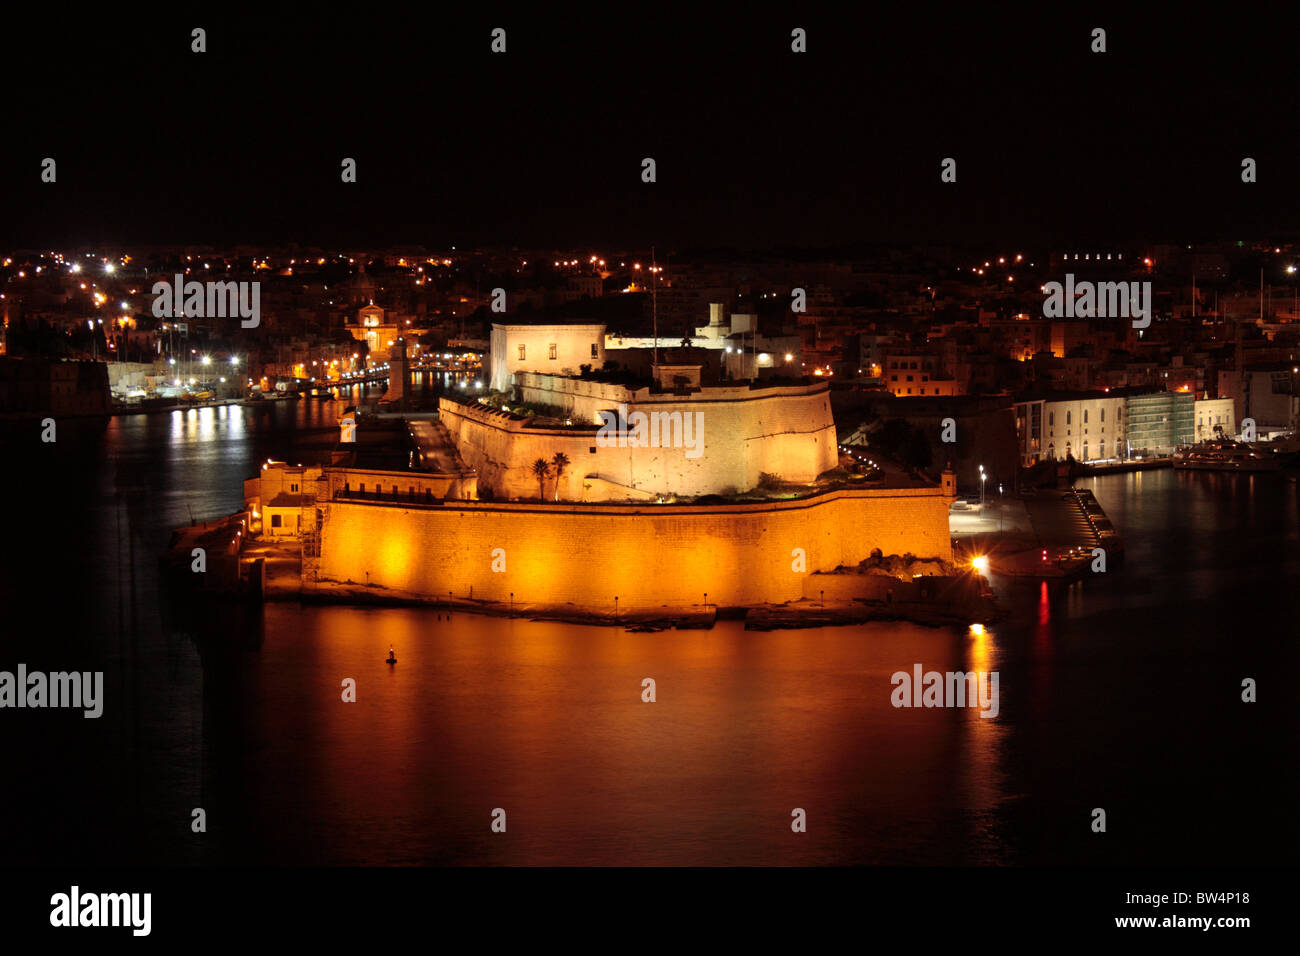 Fort St Angelo in Grand Harbour of Malta, Europe, at night. Maltese history. Historic buildings and military architecture. - Stock Image